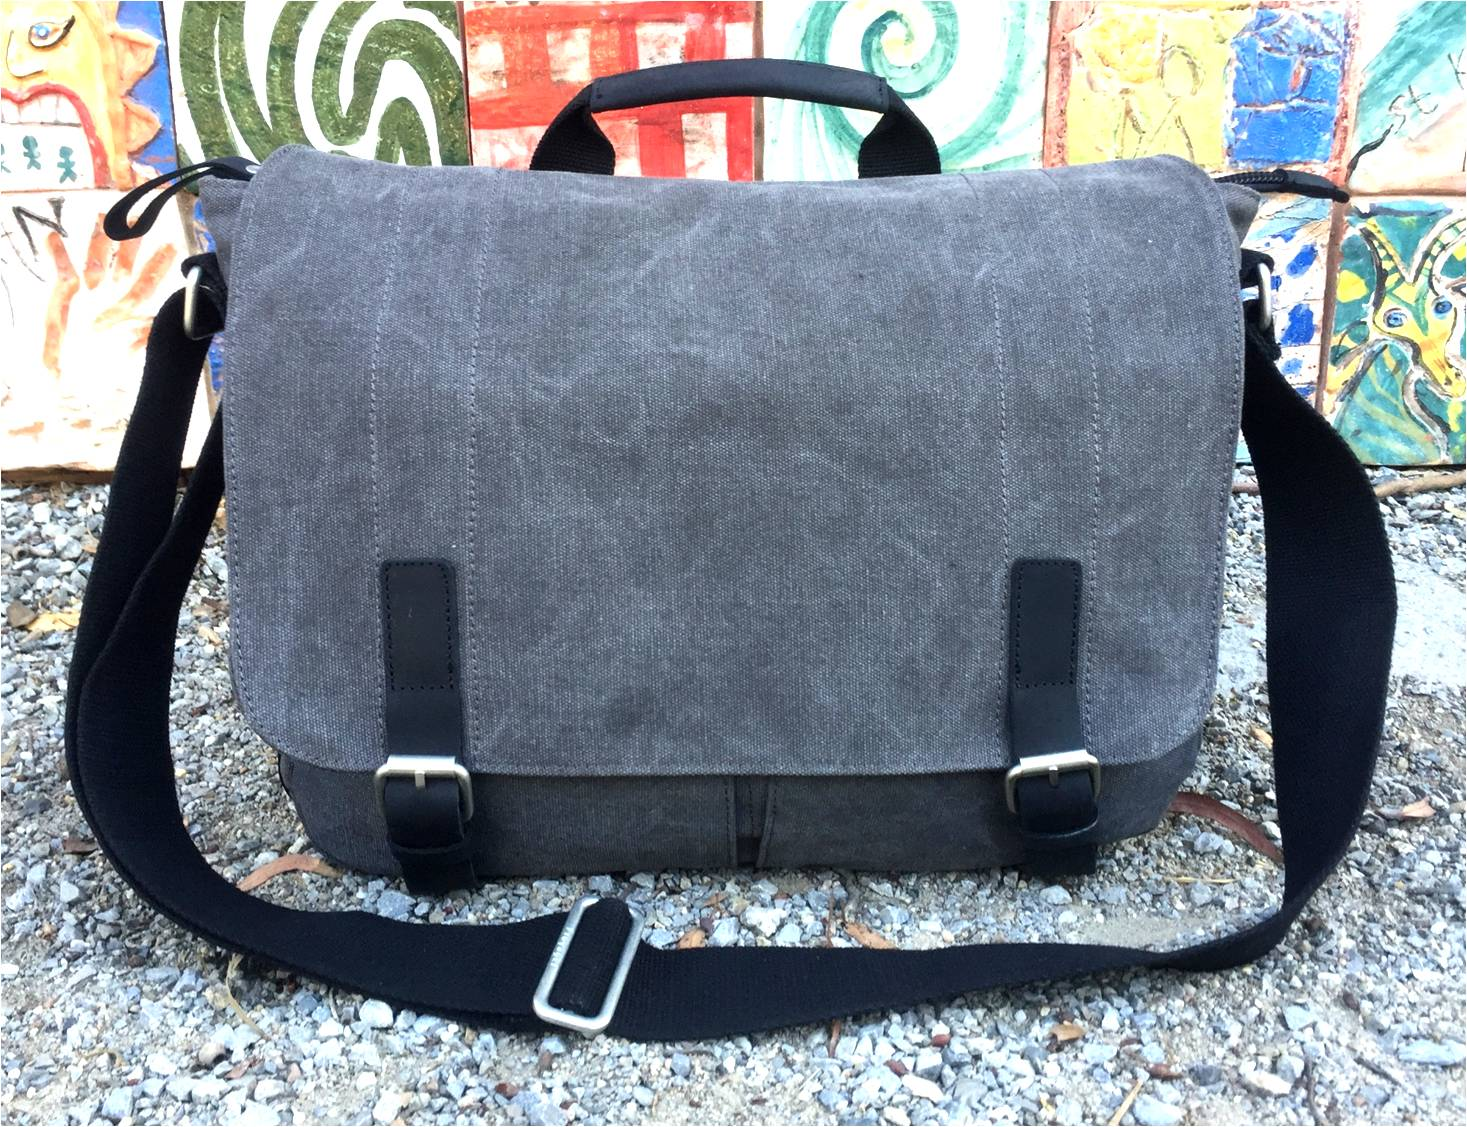 Proyager - Canvas Bags for Travel, Work And Leisure | St Kilda, Victoria 3182 | +61 488 294 999